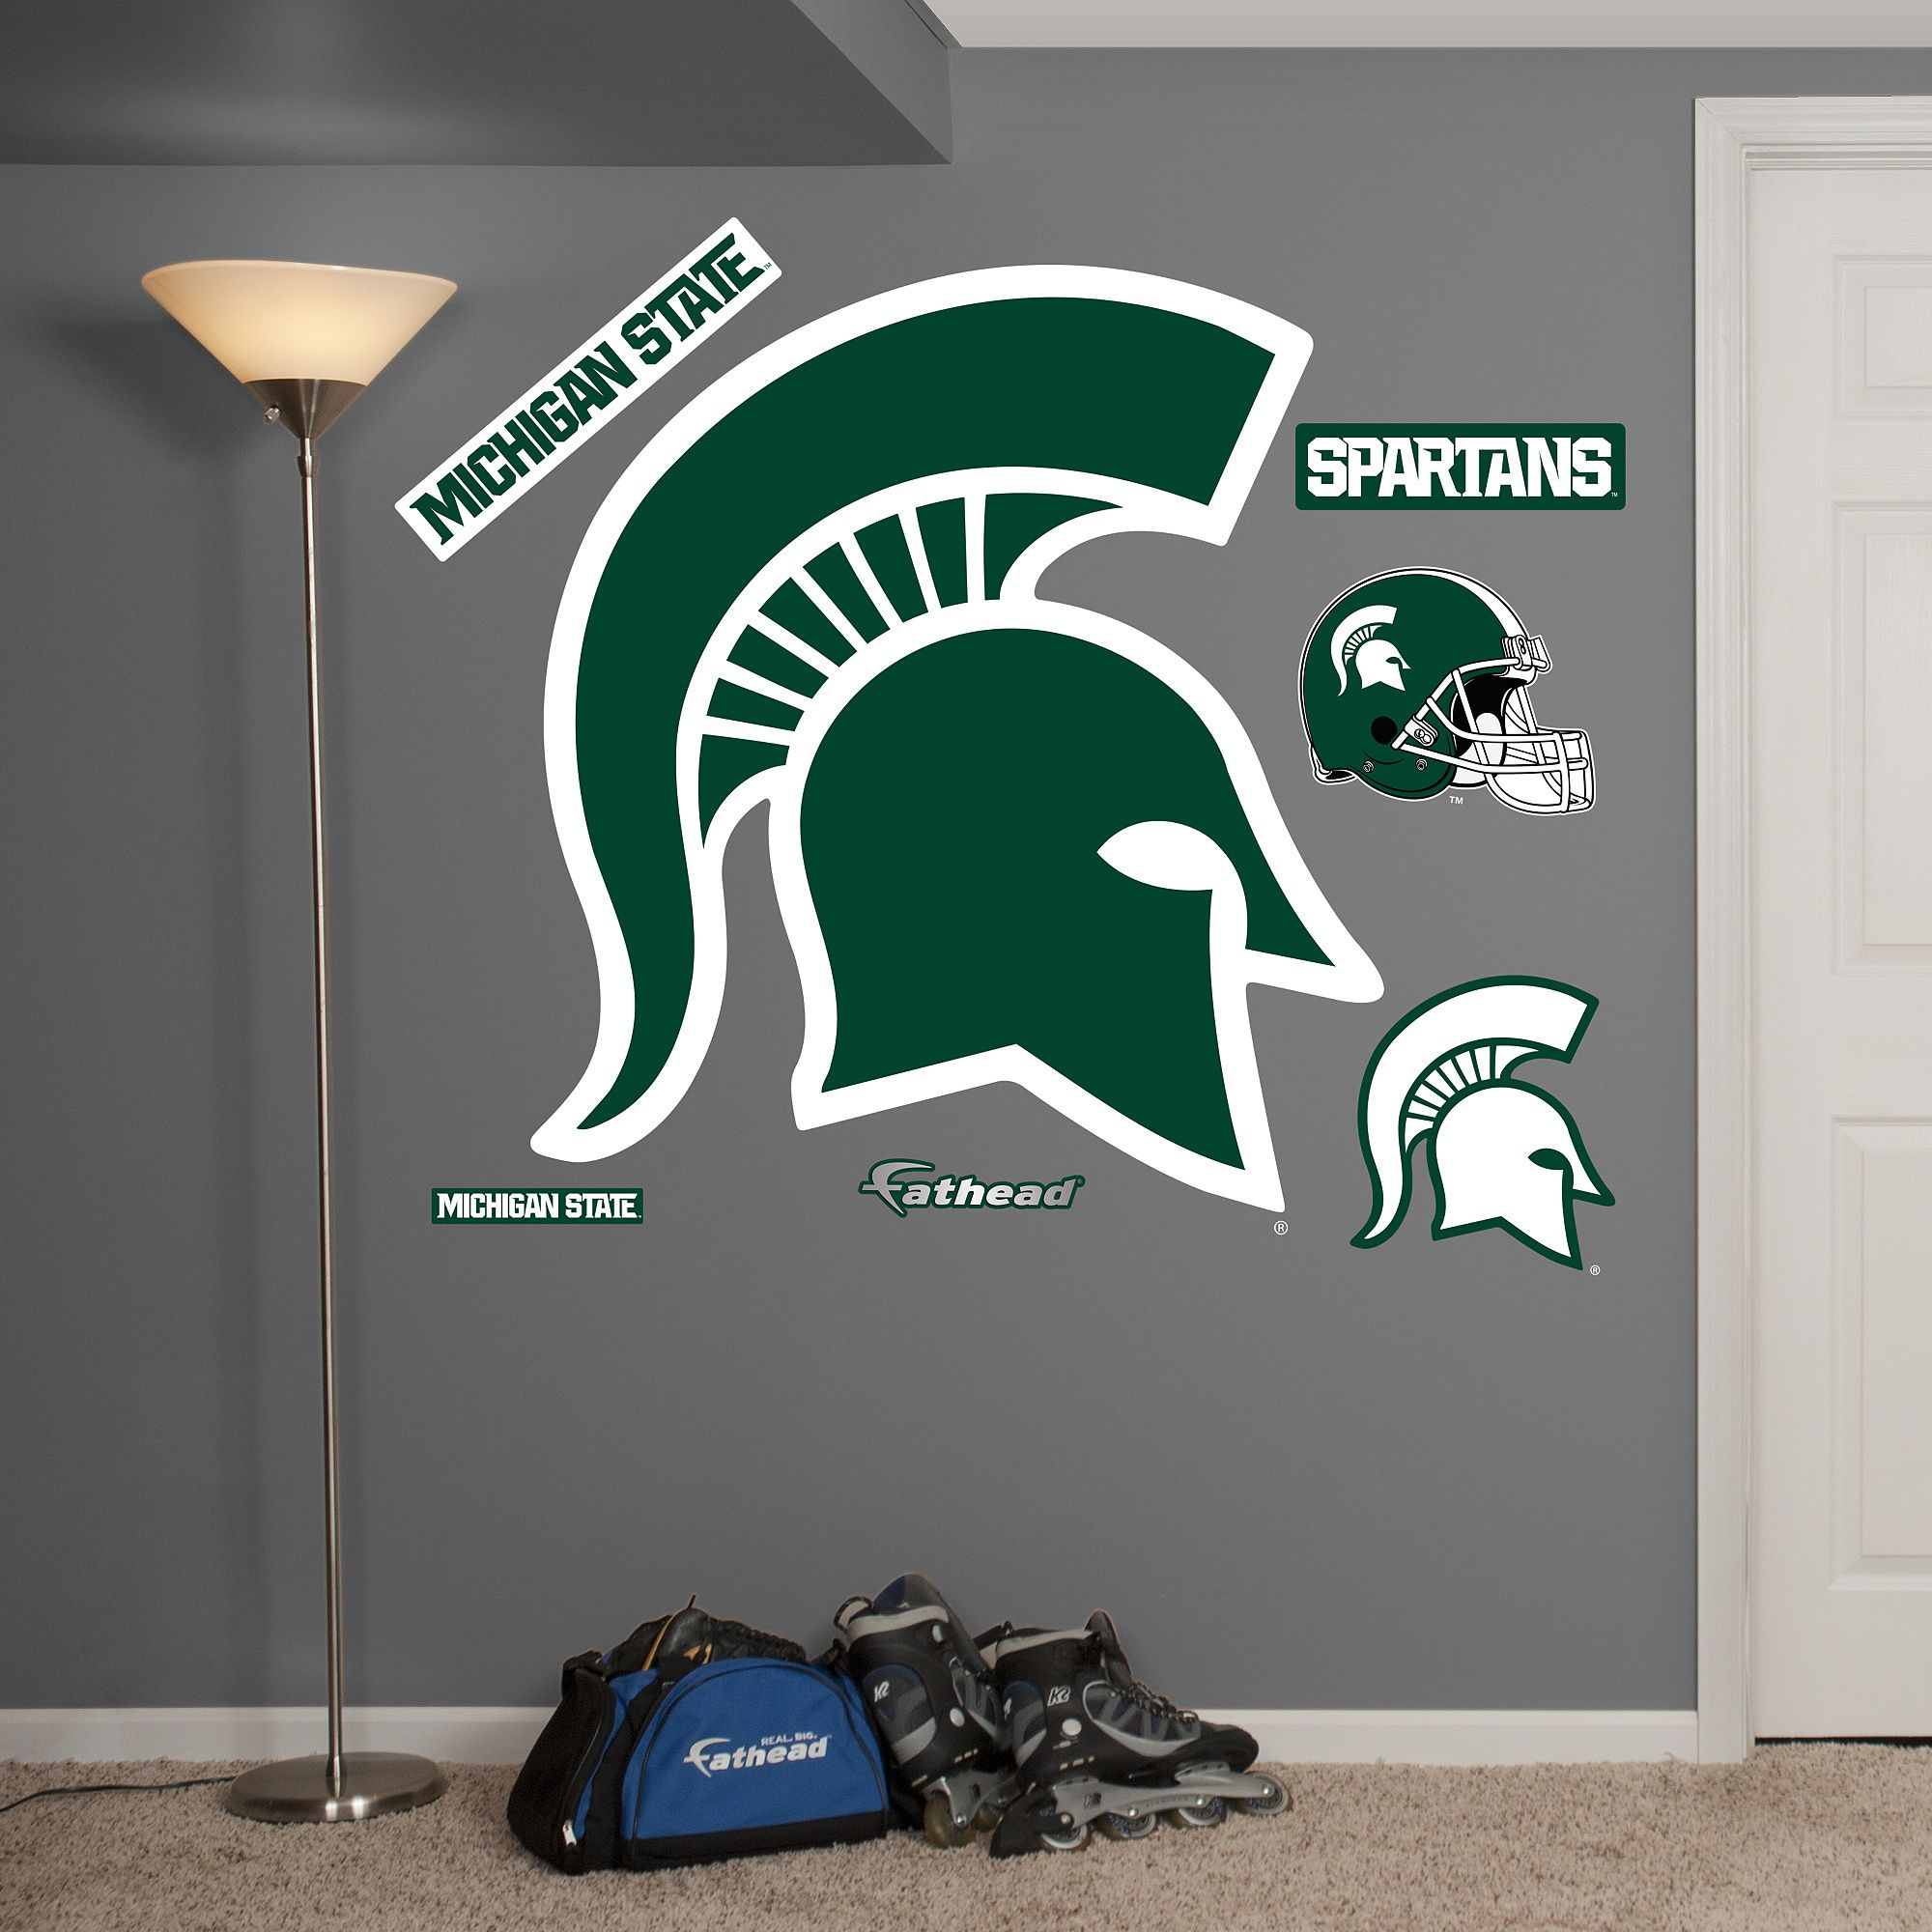 Fathead Michigan State Logo Wall Decals